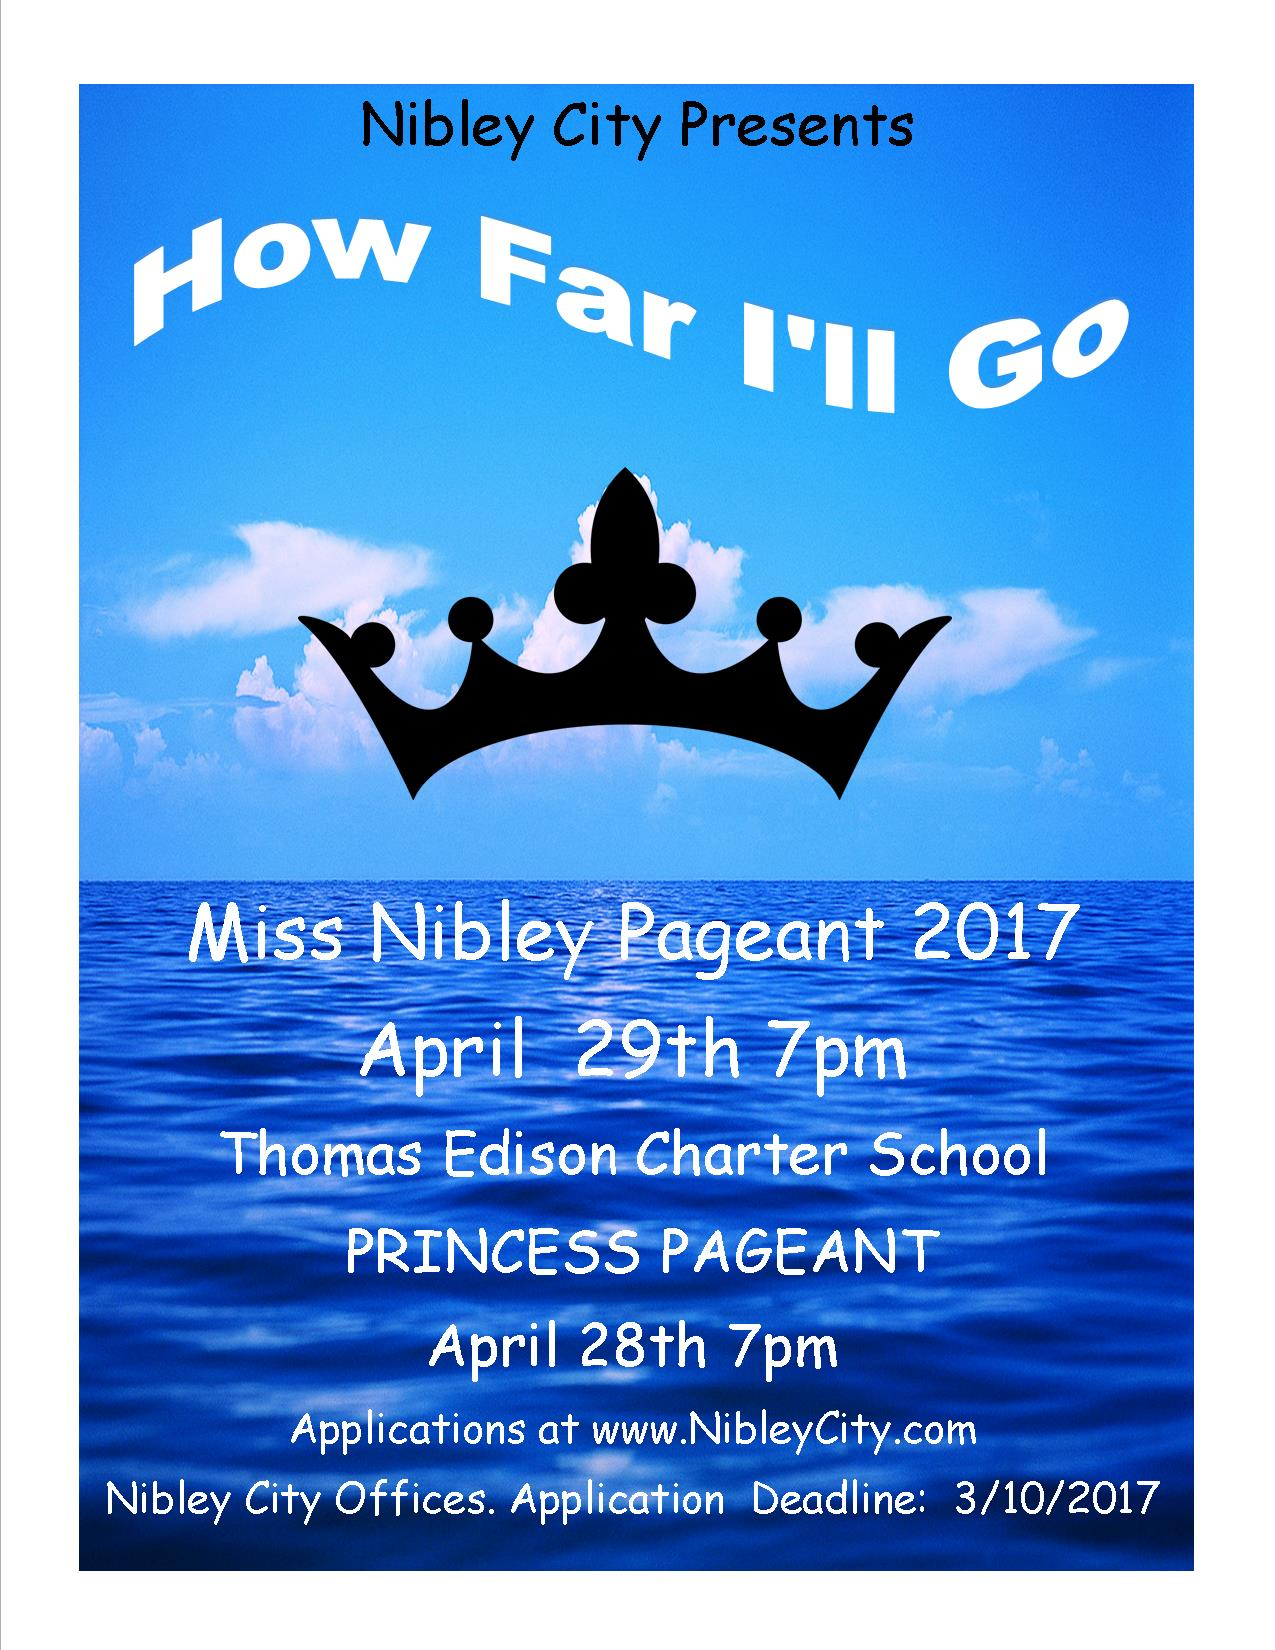 2017 Nibley Pageant Flyer